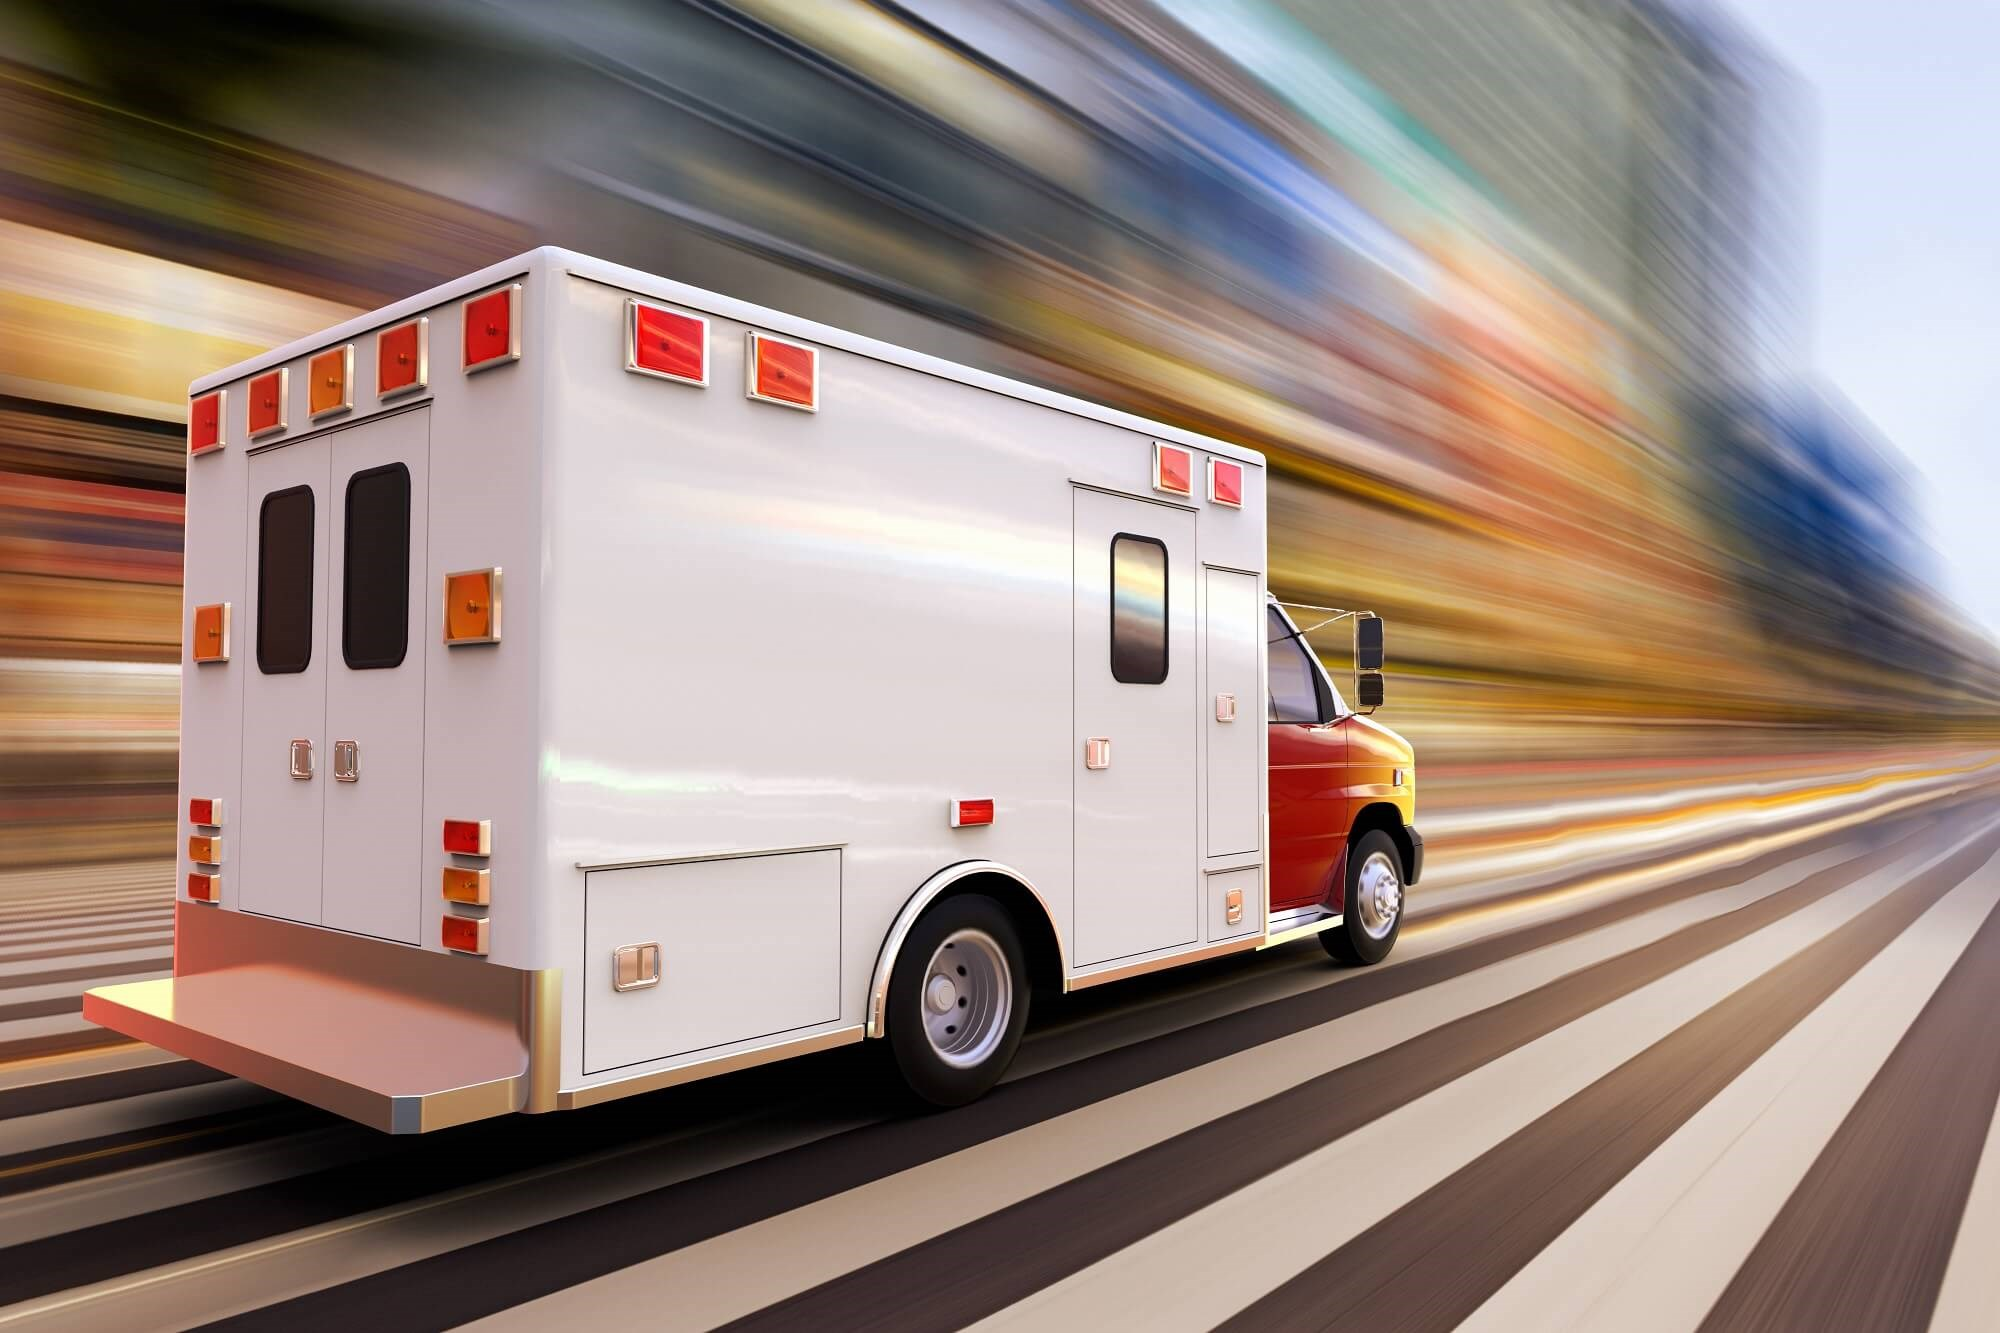 EMS Times Longer for Patients From Poorest Neighborhoods